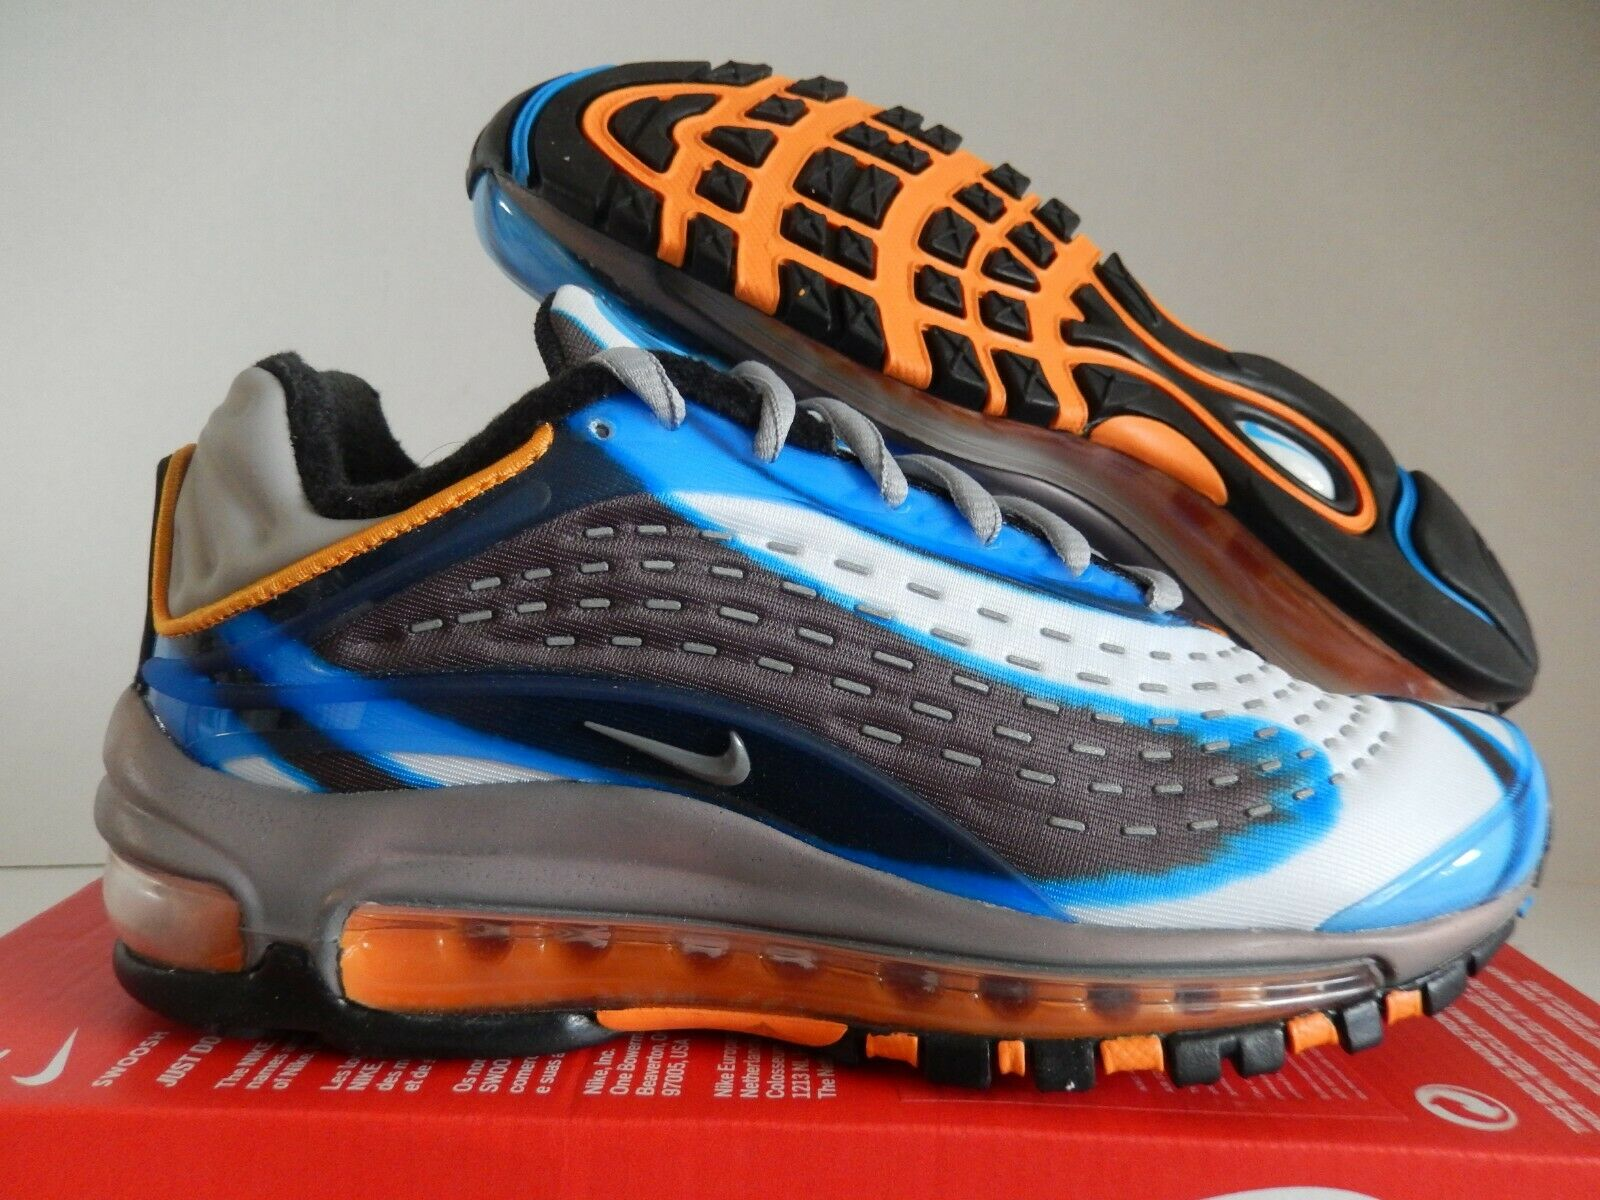 WMNS NIKE AIR MAX DELUXE 2017 97 PHOTO blueE-WOLF GREY SZ 5.5 [AQ1272-401]